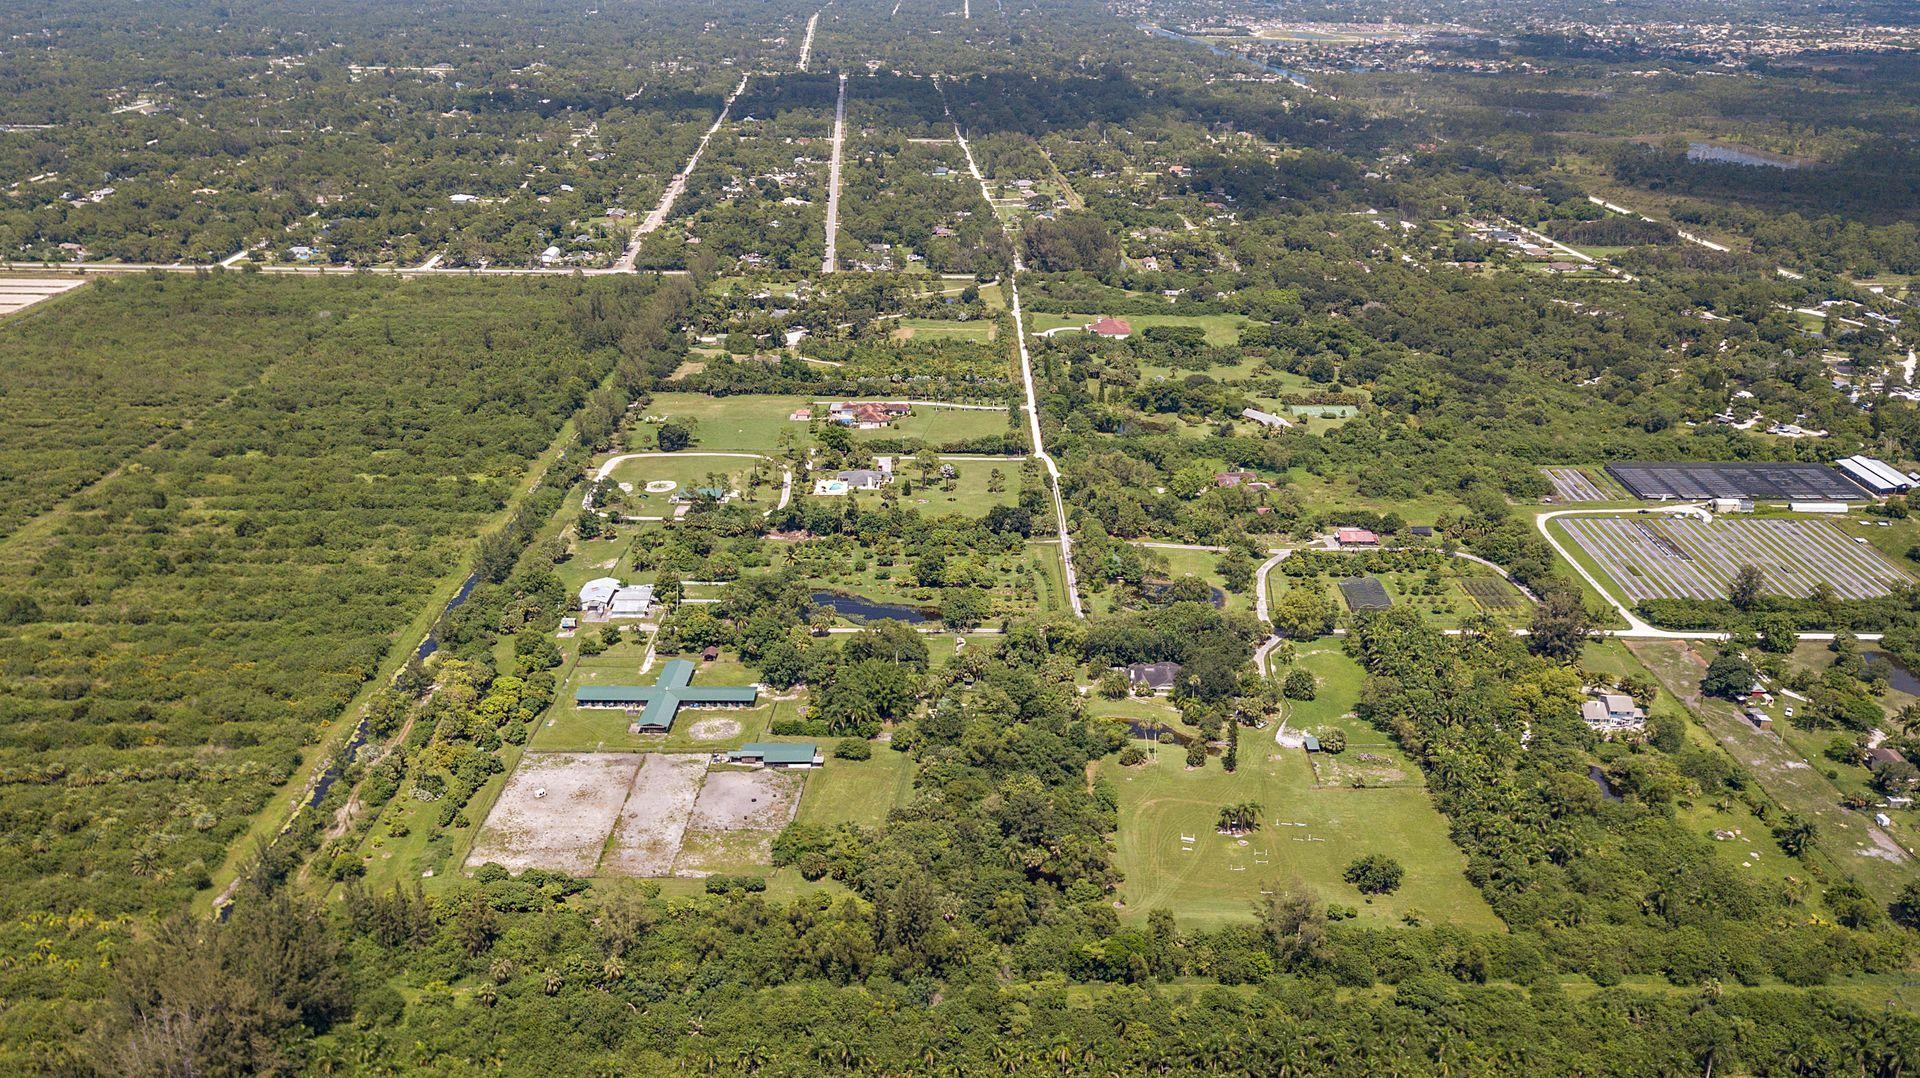 4348 145th Avenue, Loxahatchee, Florida 33470, 3 Bedrooms Bedrooms, ,2.1 BathroomsBathrooms,Single Family,For Sale,The Stables at Little Turtle Creek,145th,RX-10642268